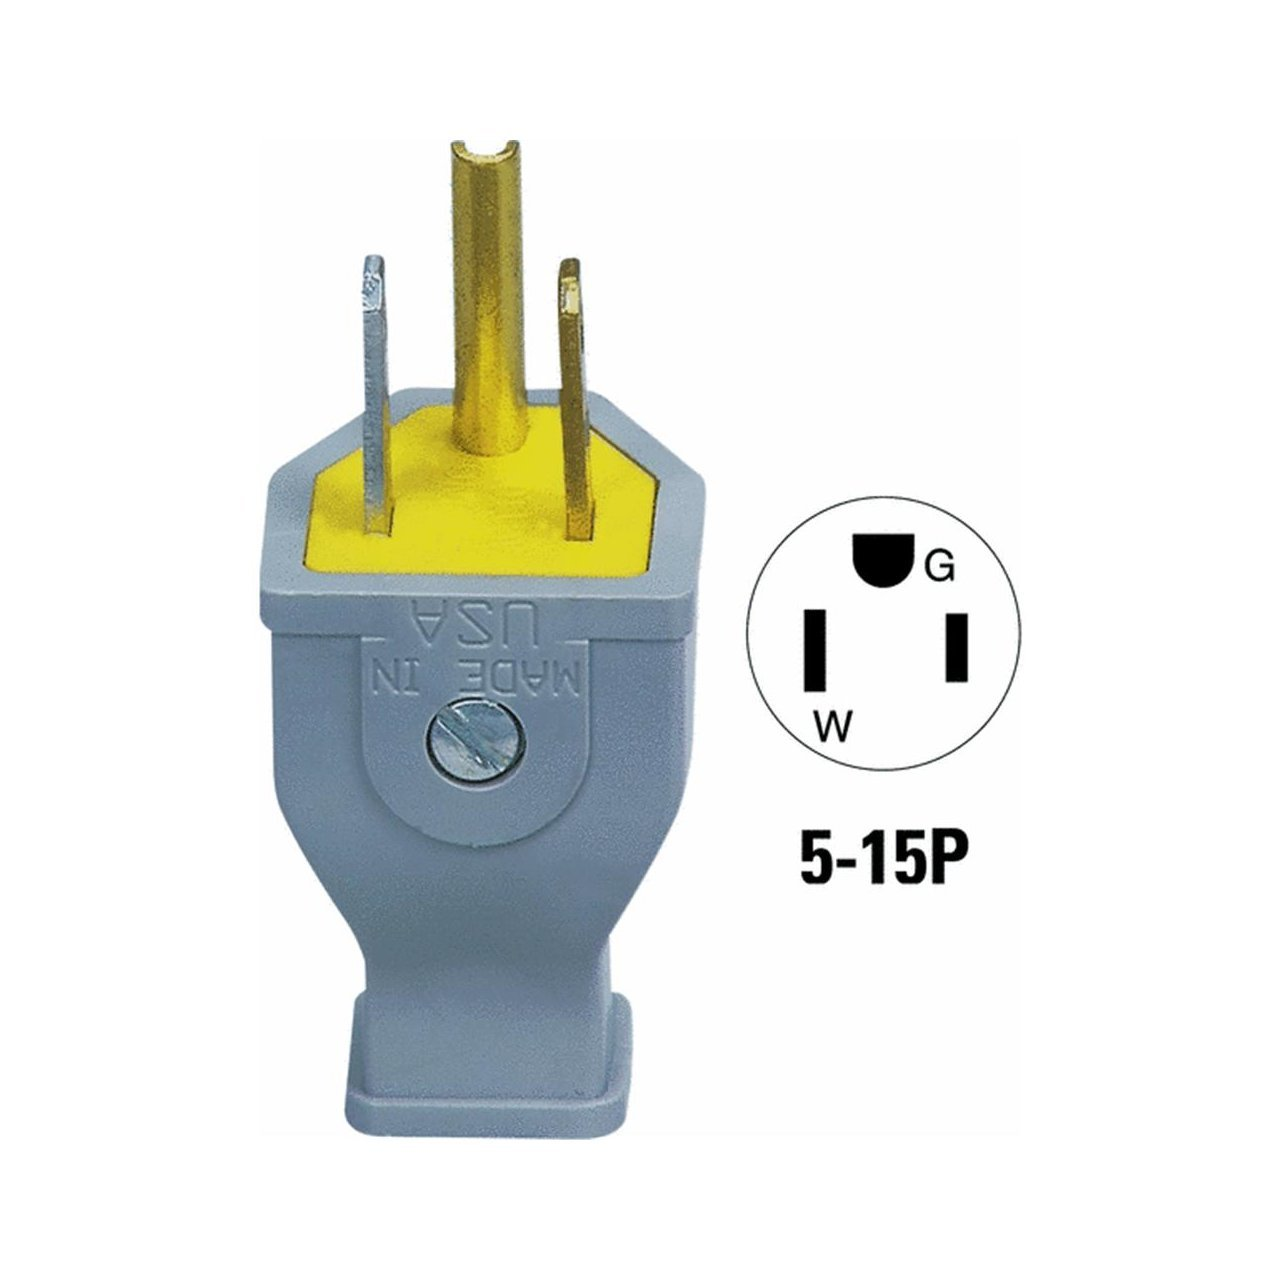 hight resolution of cheap grounded plug wiring find grounded plug wiring deals on line cooper wiring 4409anbox angle grounded cord plugangle cord plug